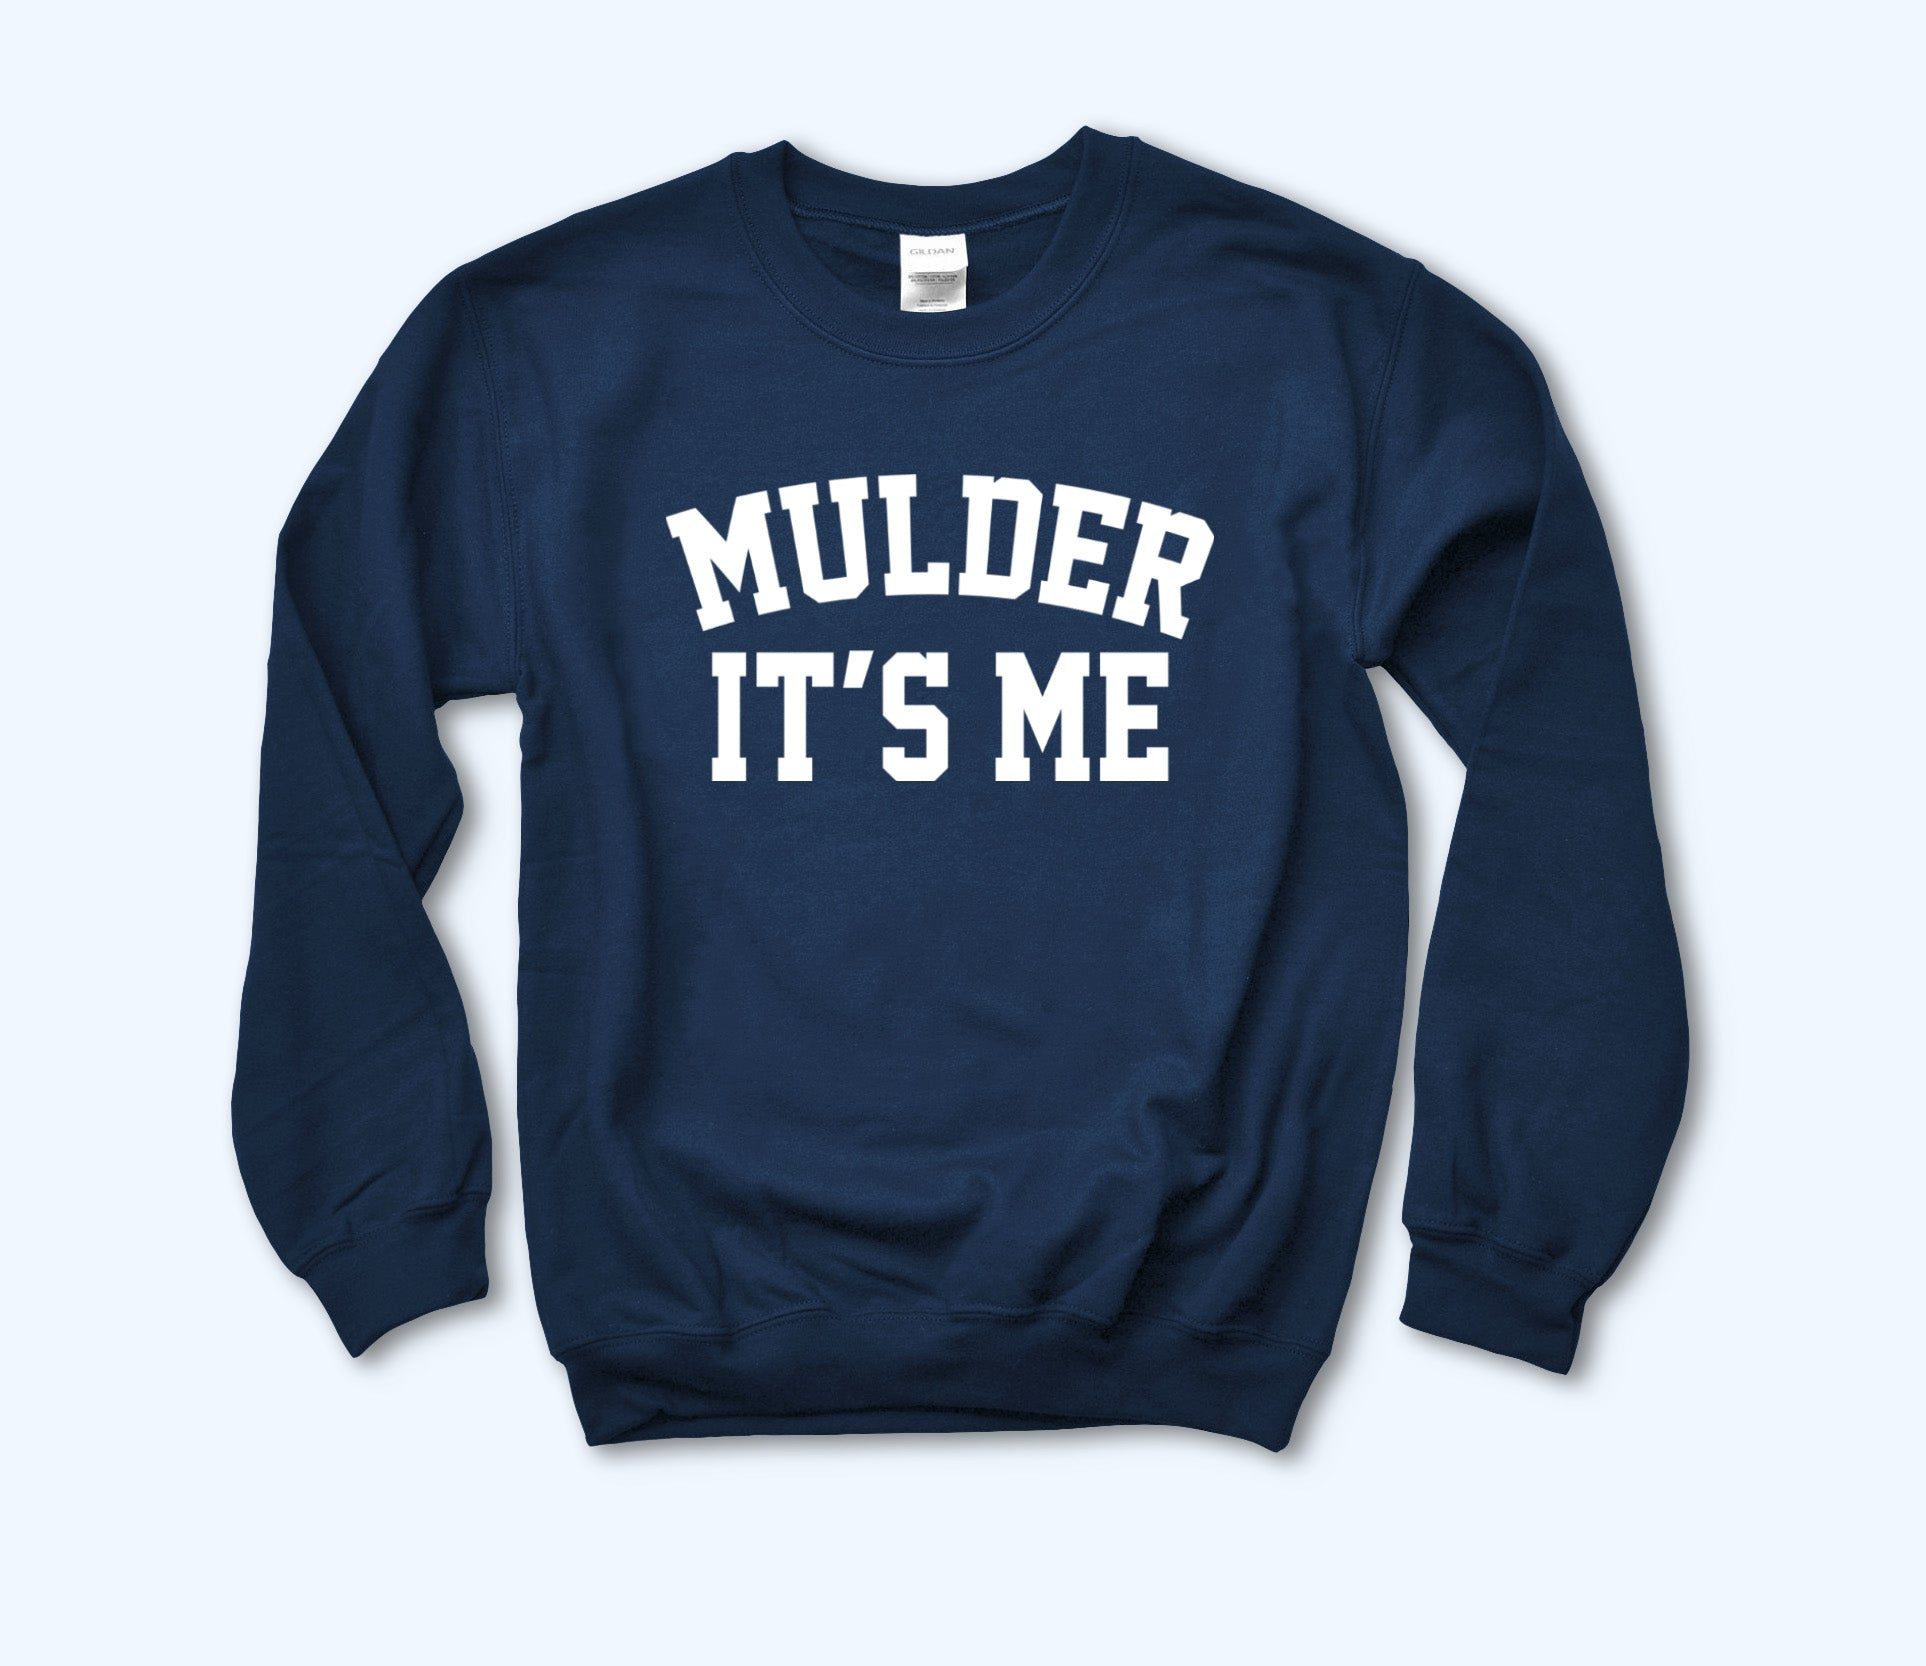 Mulder It's Me Sweatshirt